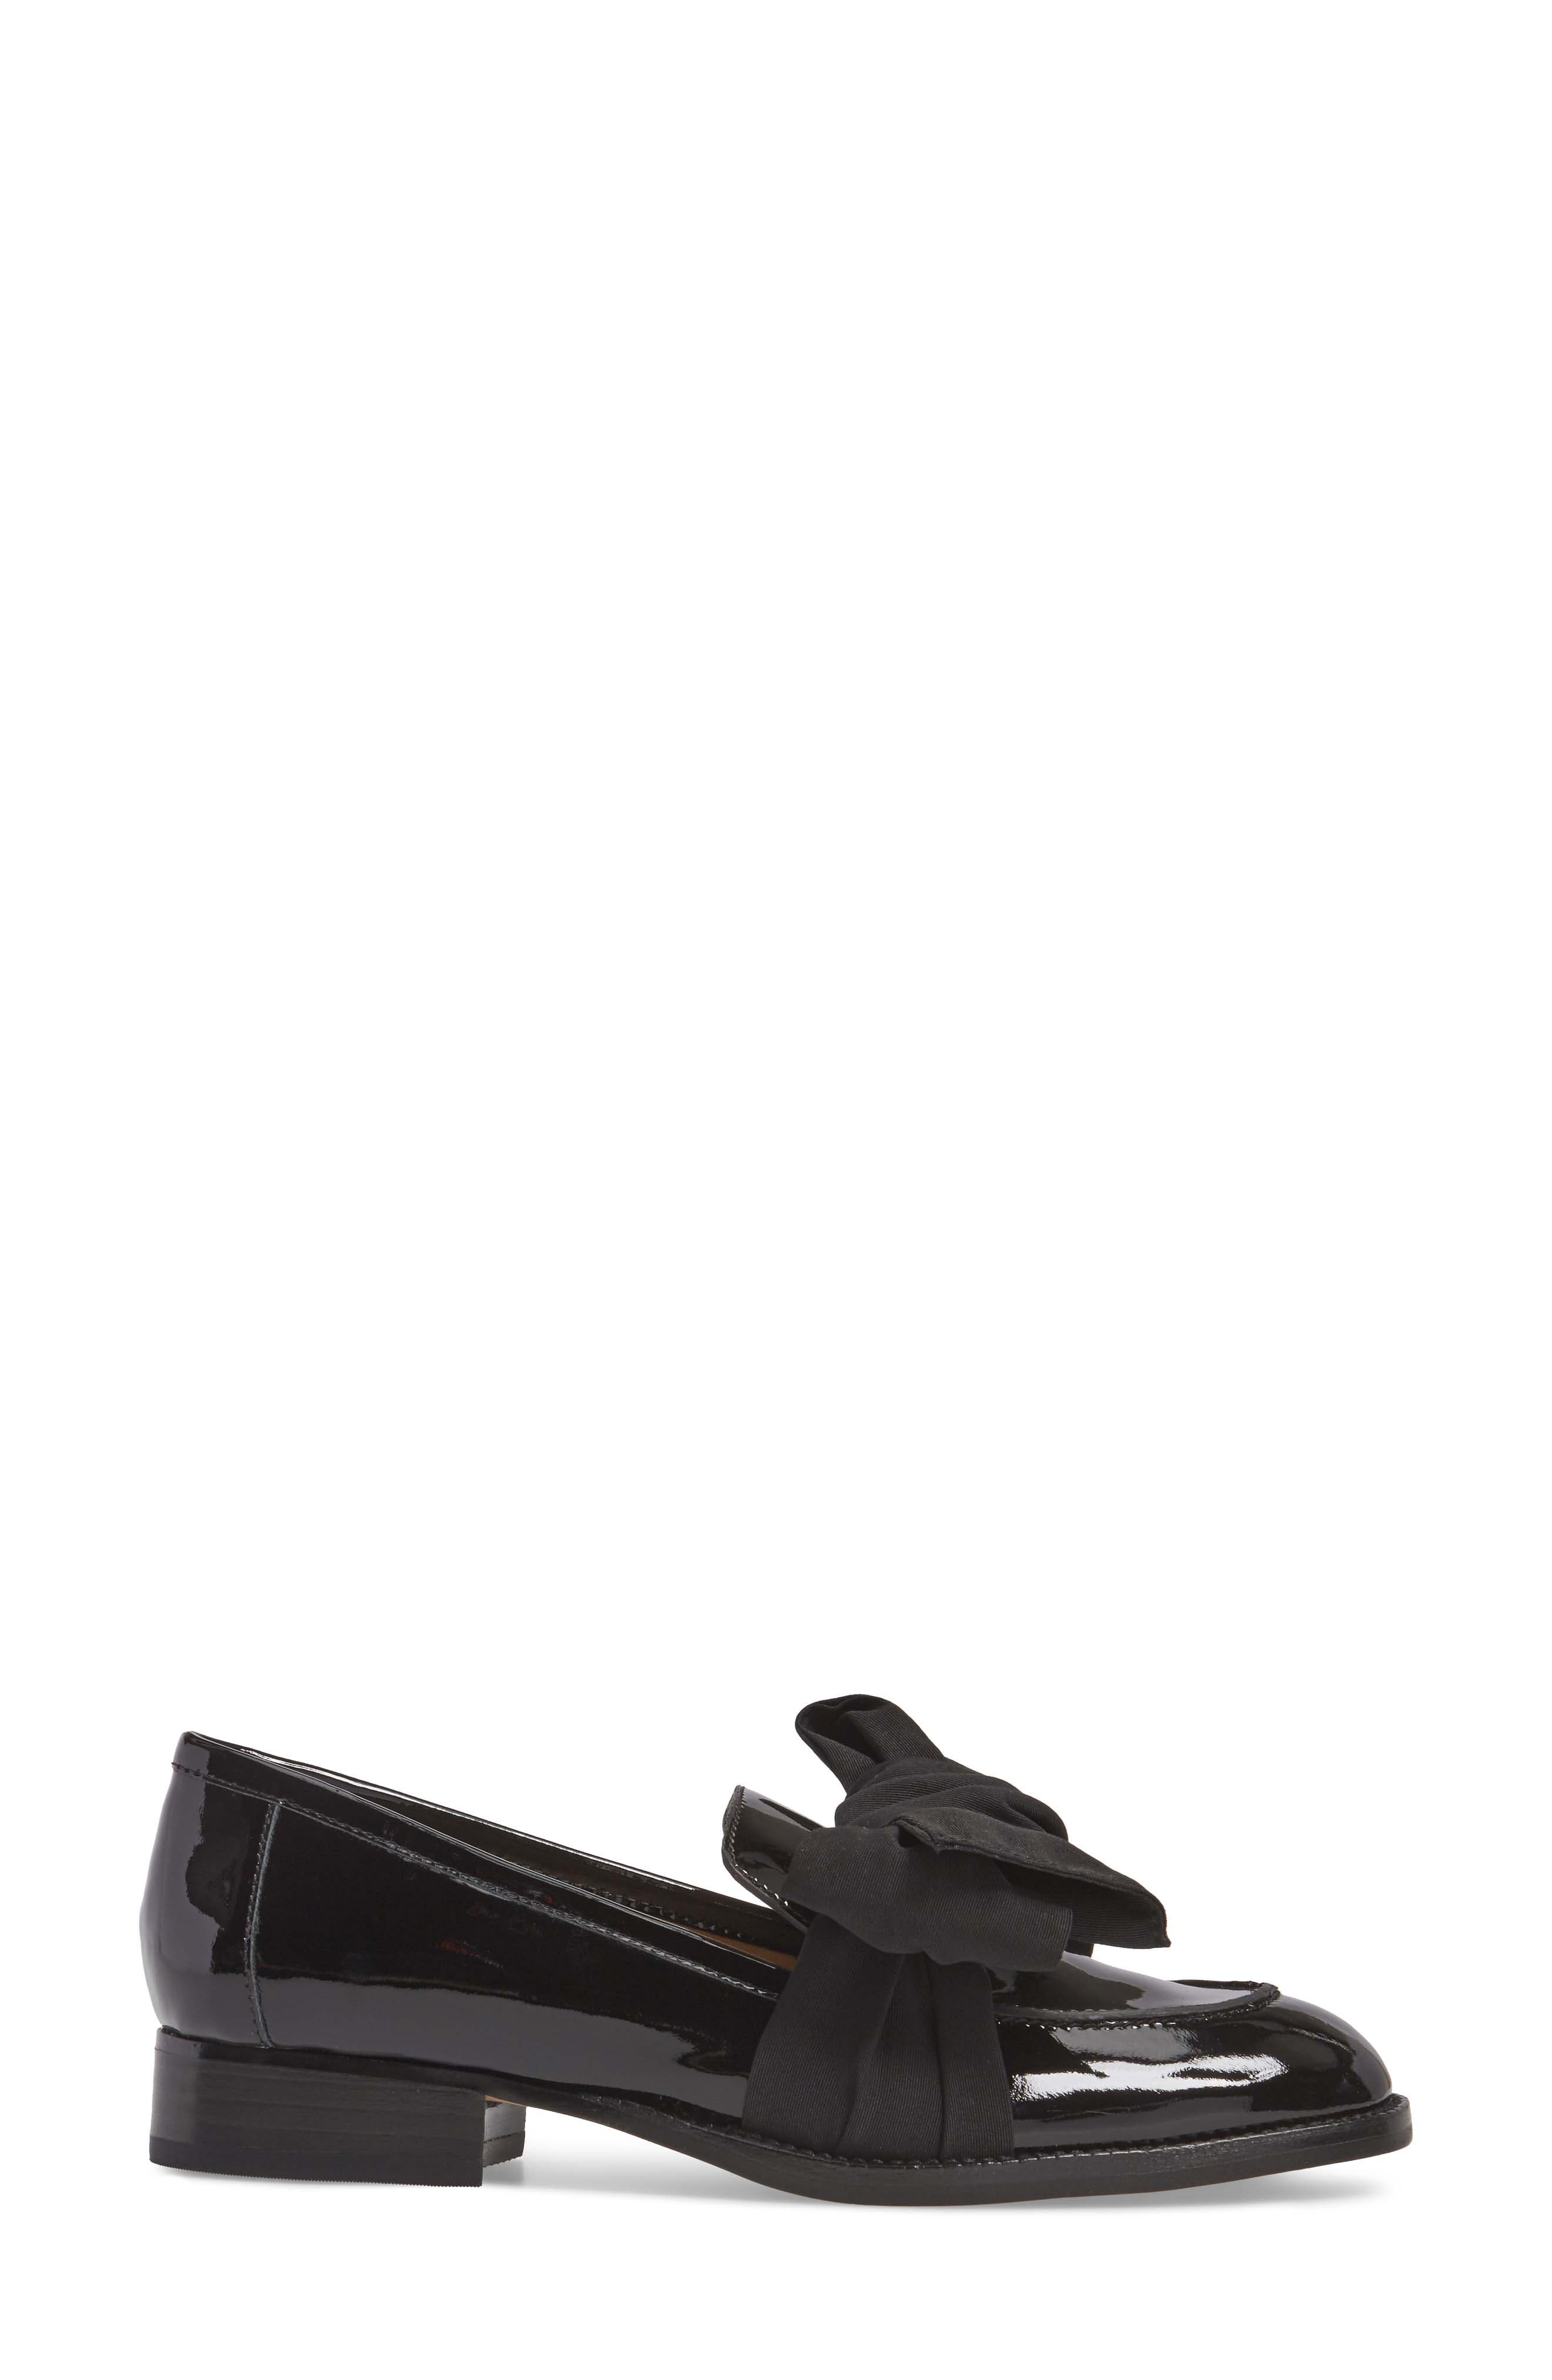 BOTKIER,                             Violet Bow Loafer,                             Alternate thumbnail 3, color,                             BLACK PATENT LEATHER